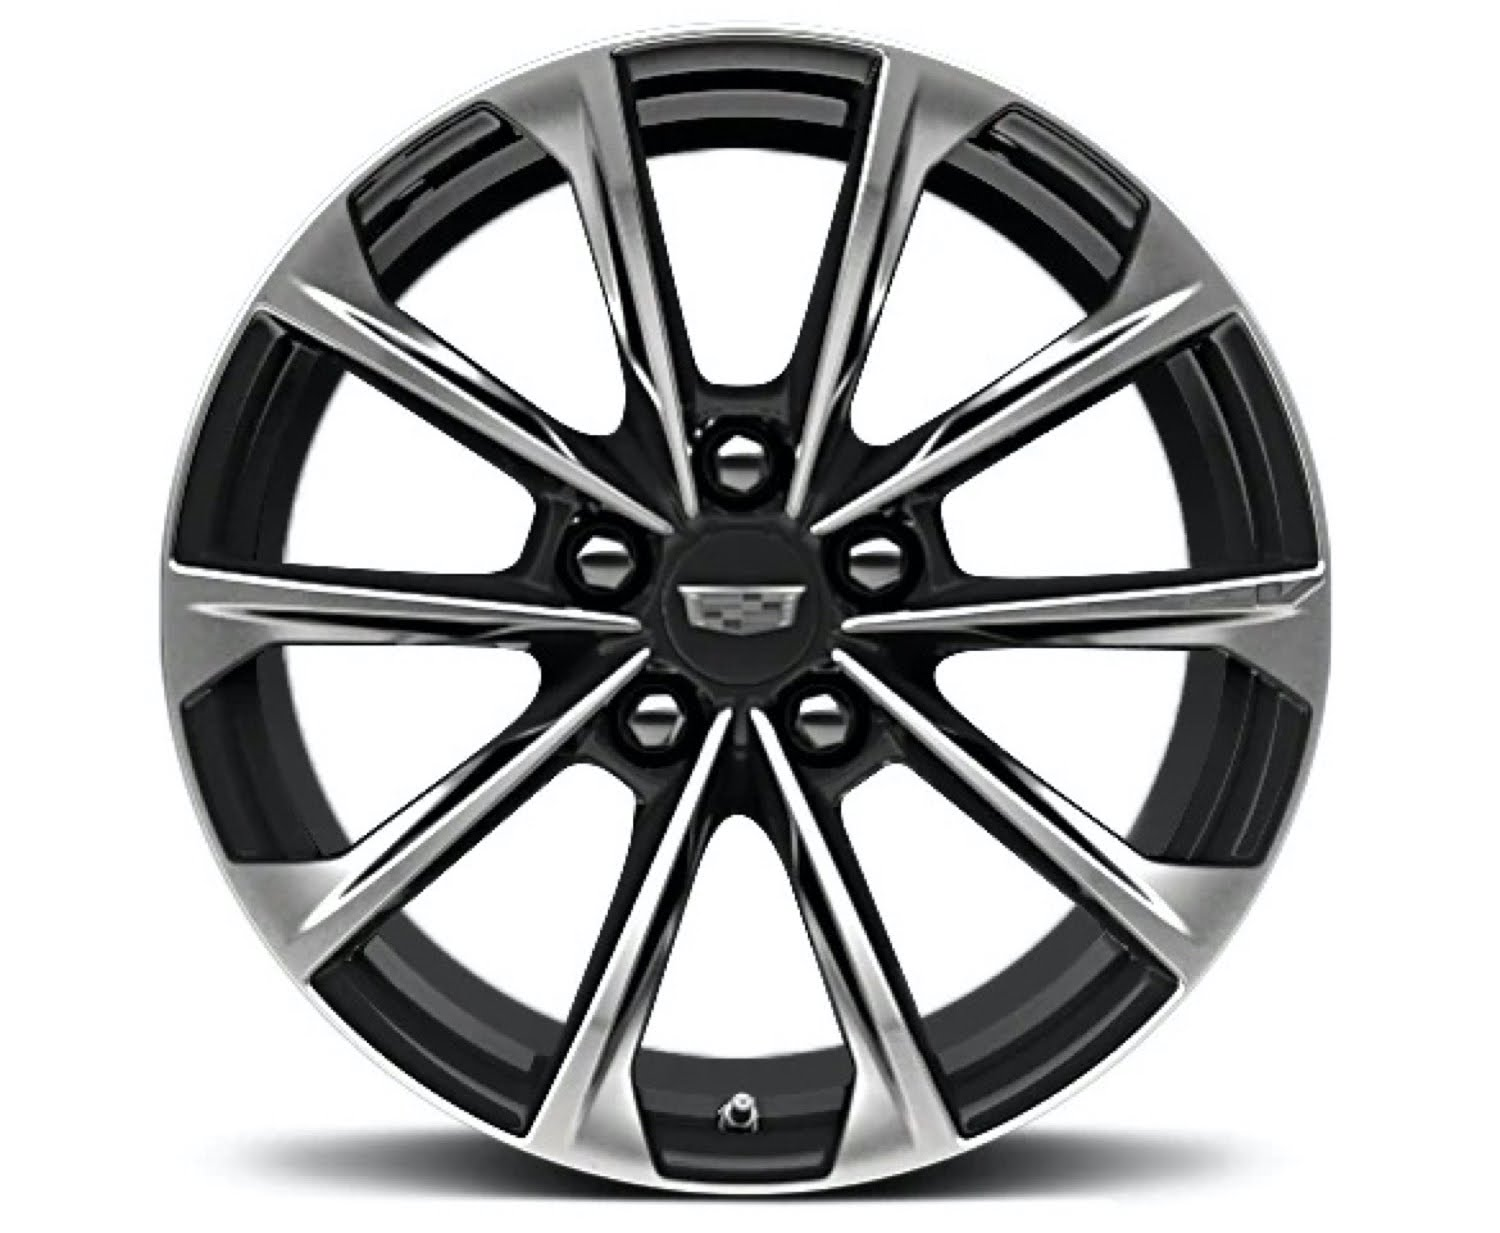 2022-Cadillac-CT4-V-Blackwing-18-inch-aluminum-alloy-wheel-with-Polished-Dark-Android-finish-R38.jpg